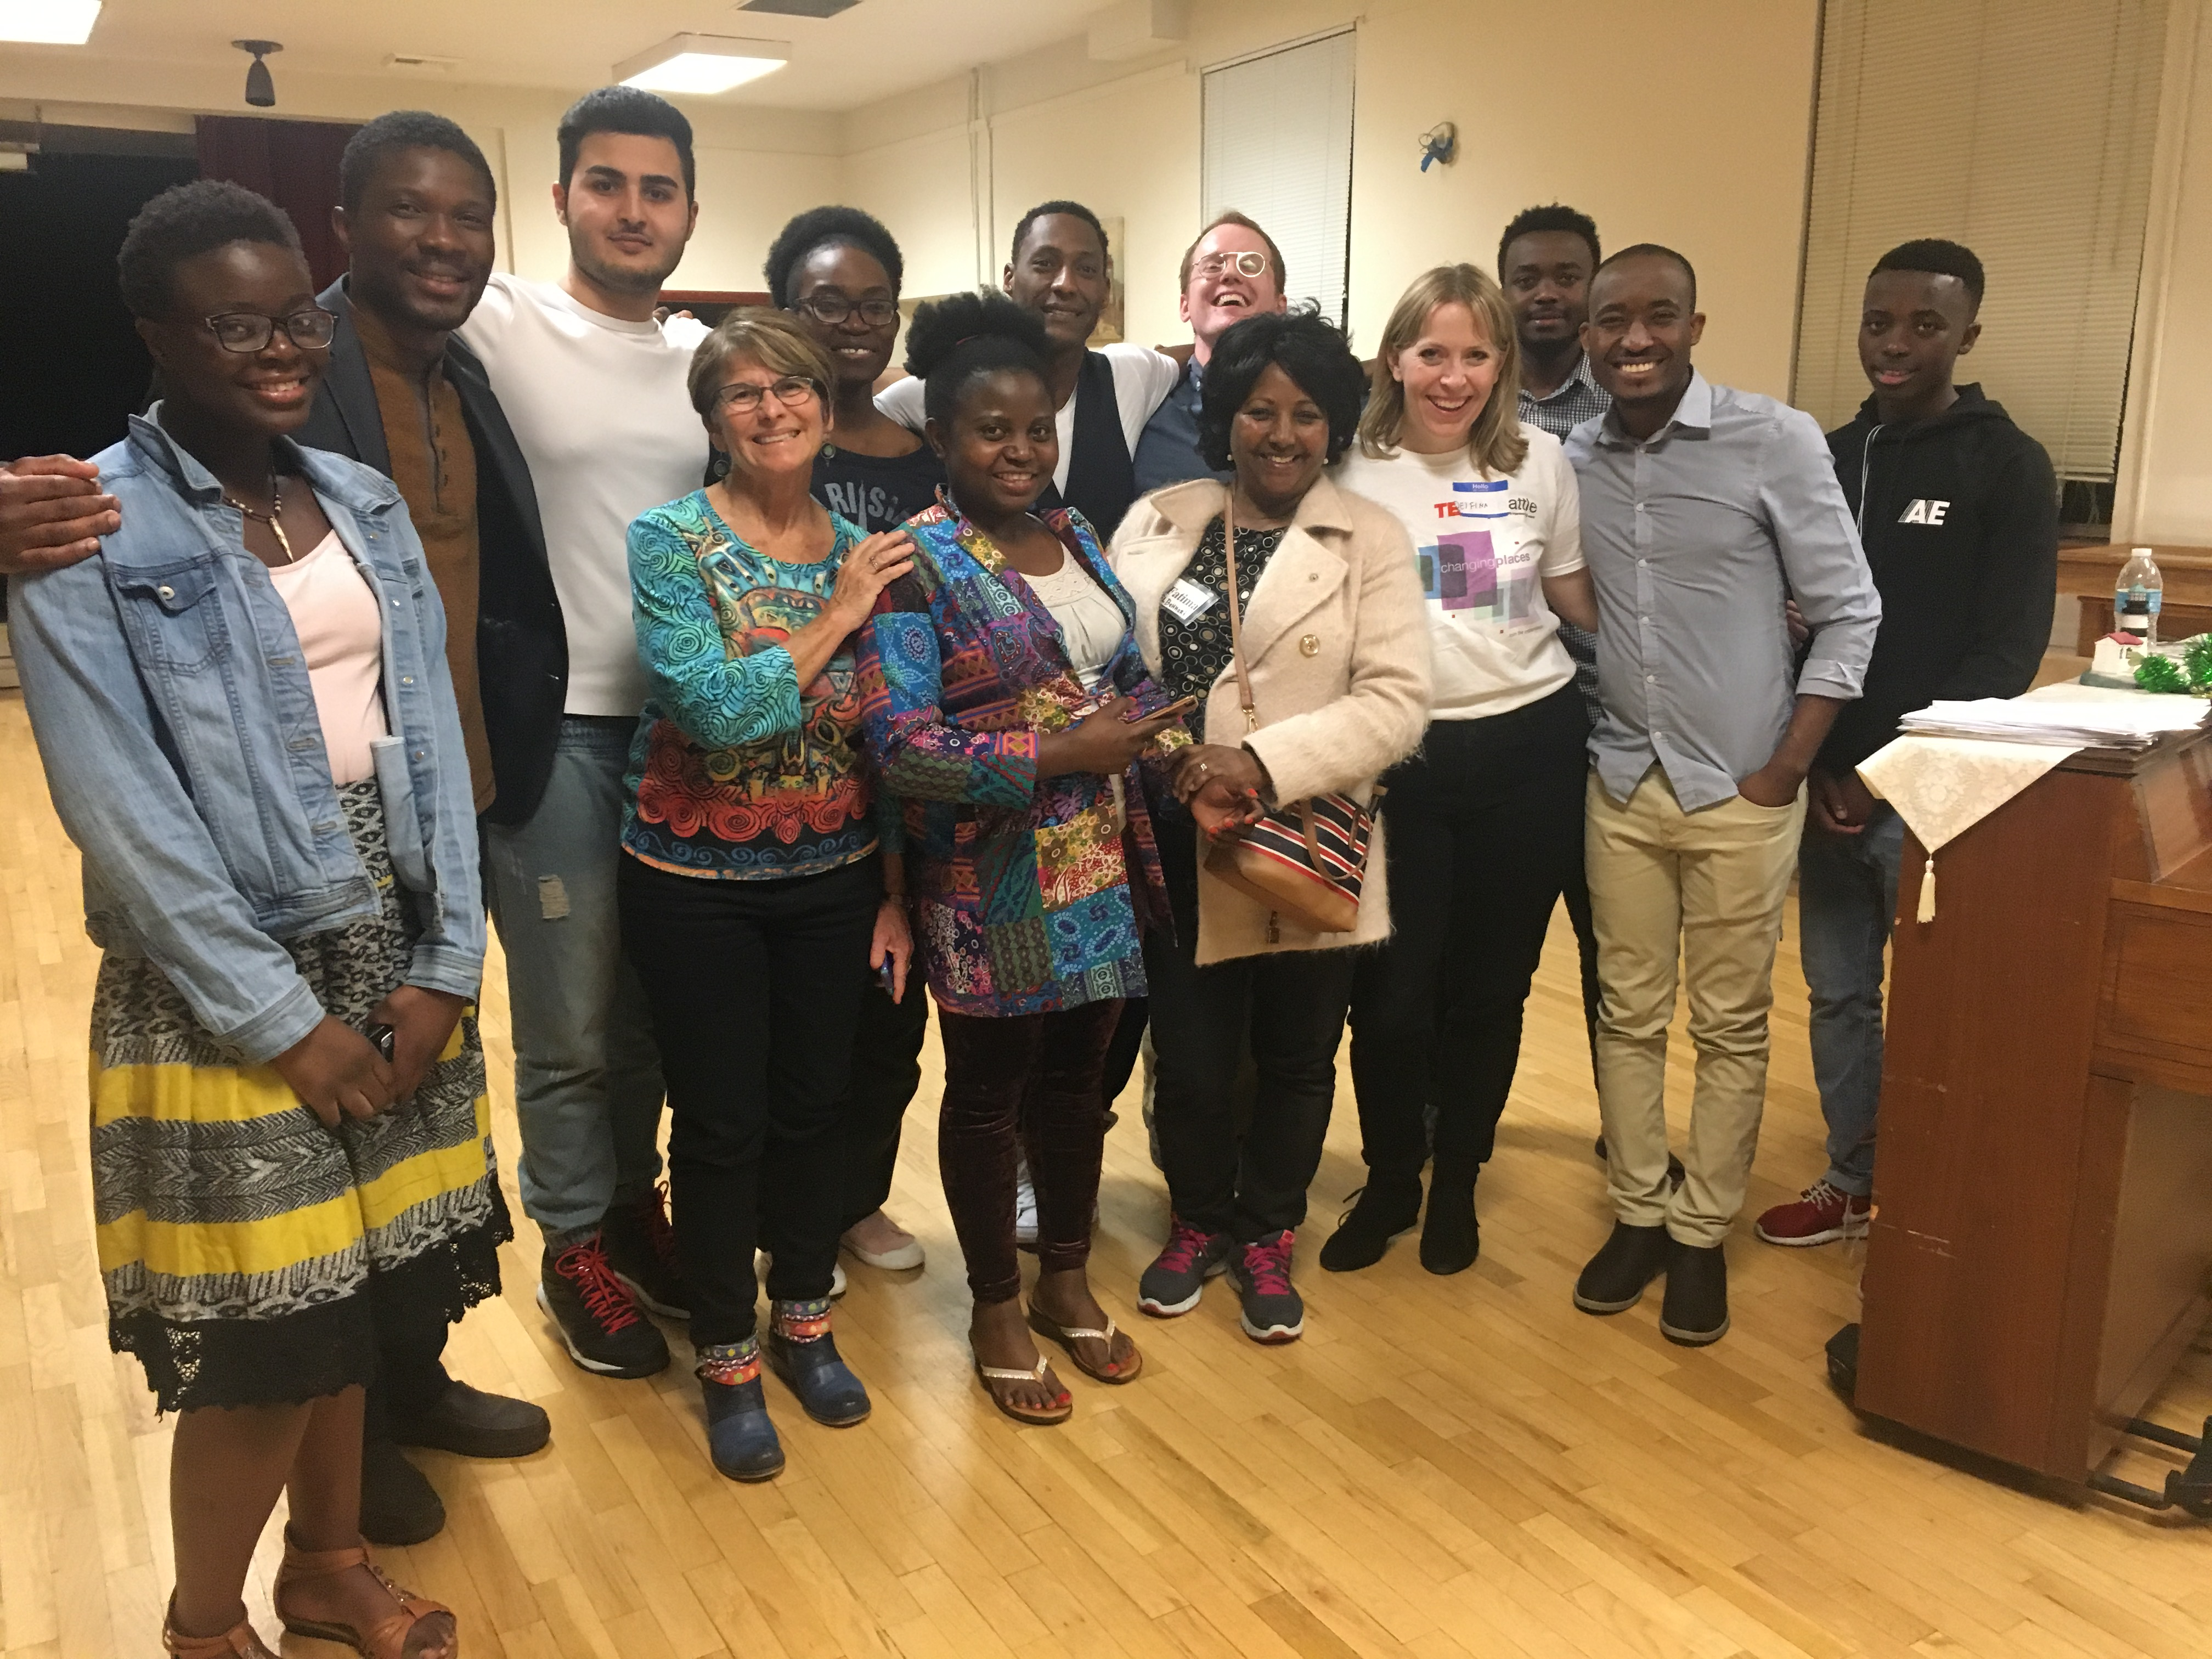 Tacoma Refugee Choir participants pose for a photo following a rehearsal.